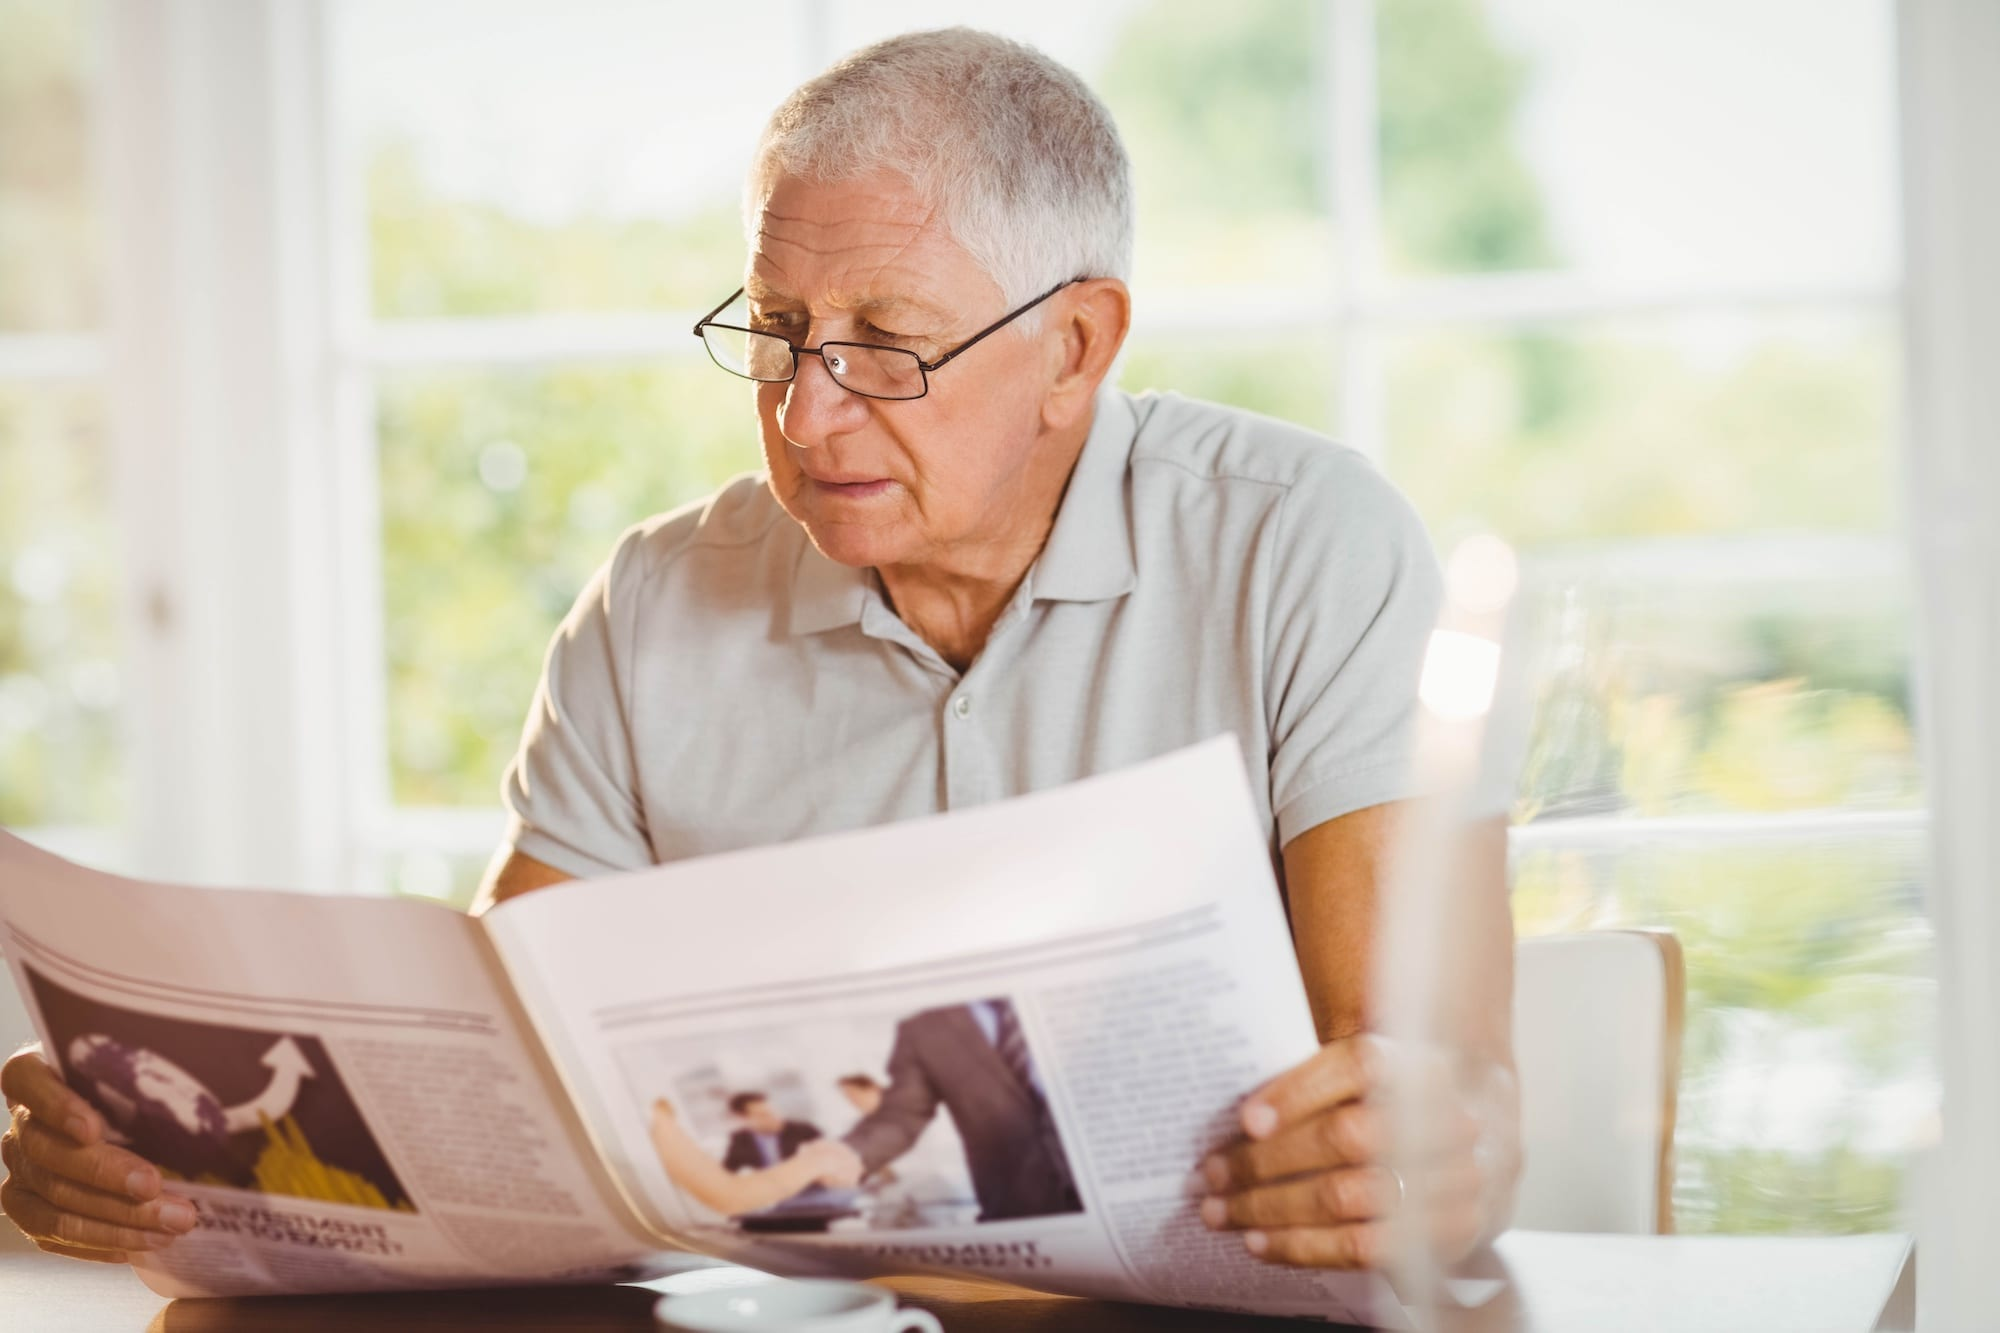 Focused senior man reading newspaper | North Houston Hearing